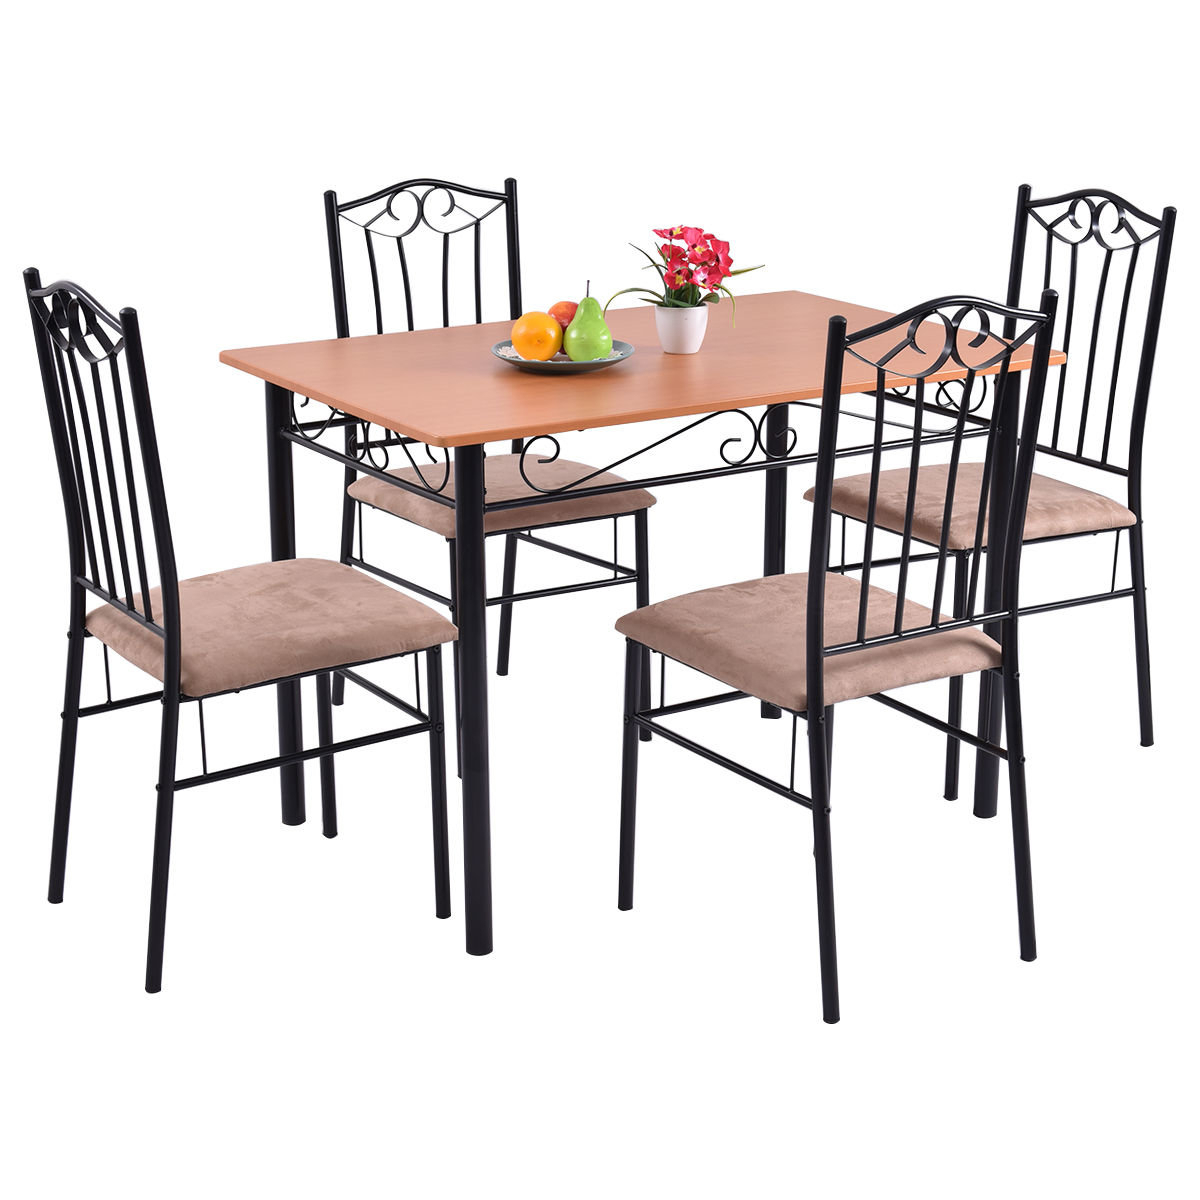 Turnalar 5 Piece Dining Sets Within Most Up To Date Rossi 5 Piece Dining Set (View 10 of 20)